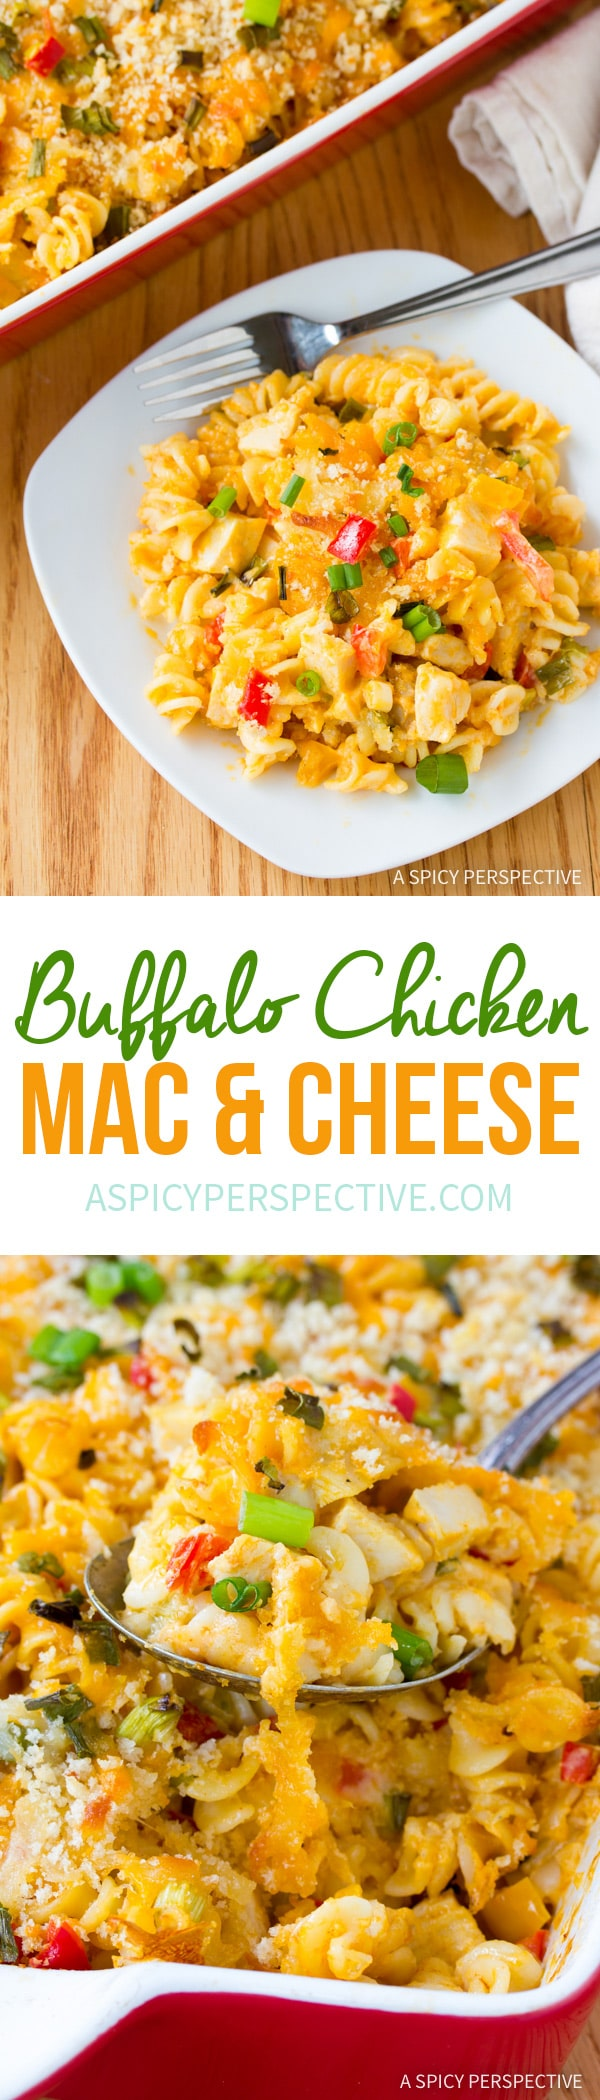 Amazing Buffalo Chicken Mac and Cheese Recipe #winner